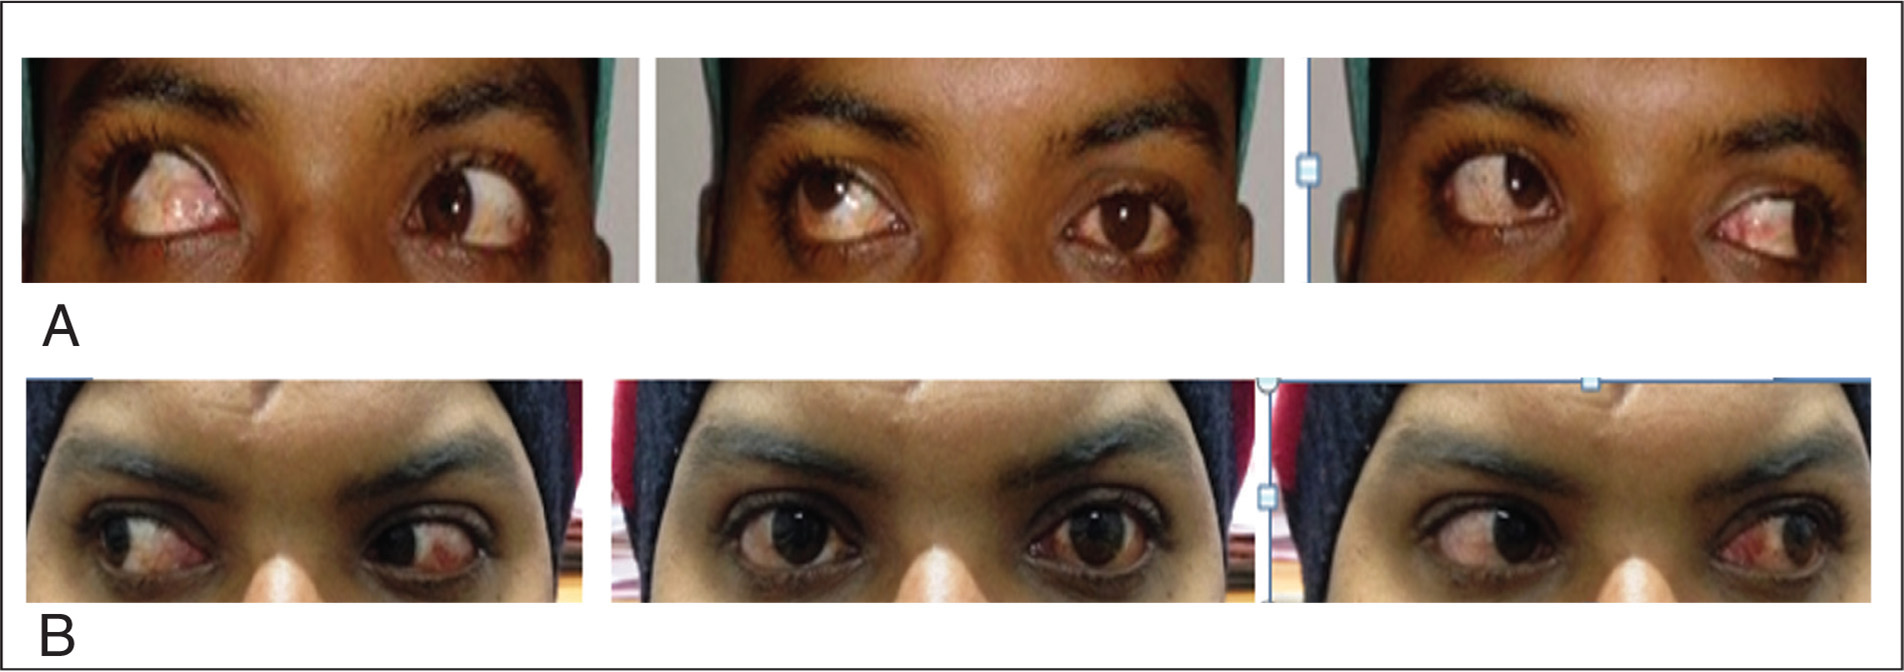 (A) Preoperative photograph of case 2 showing exotropia and hypertropia. (B) Postoperative photograph showing good alignment in primary gaze after surgery in both eyes.